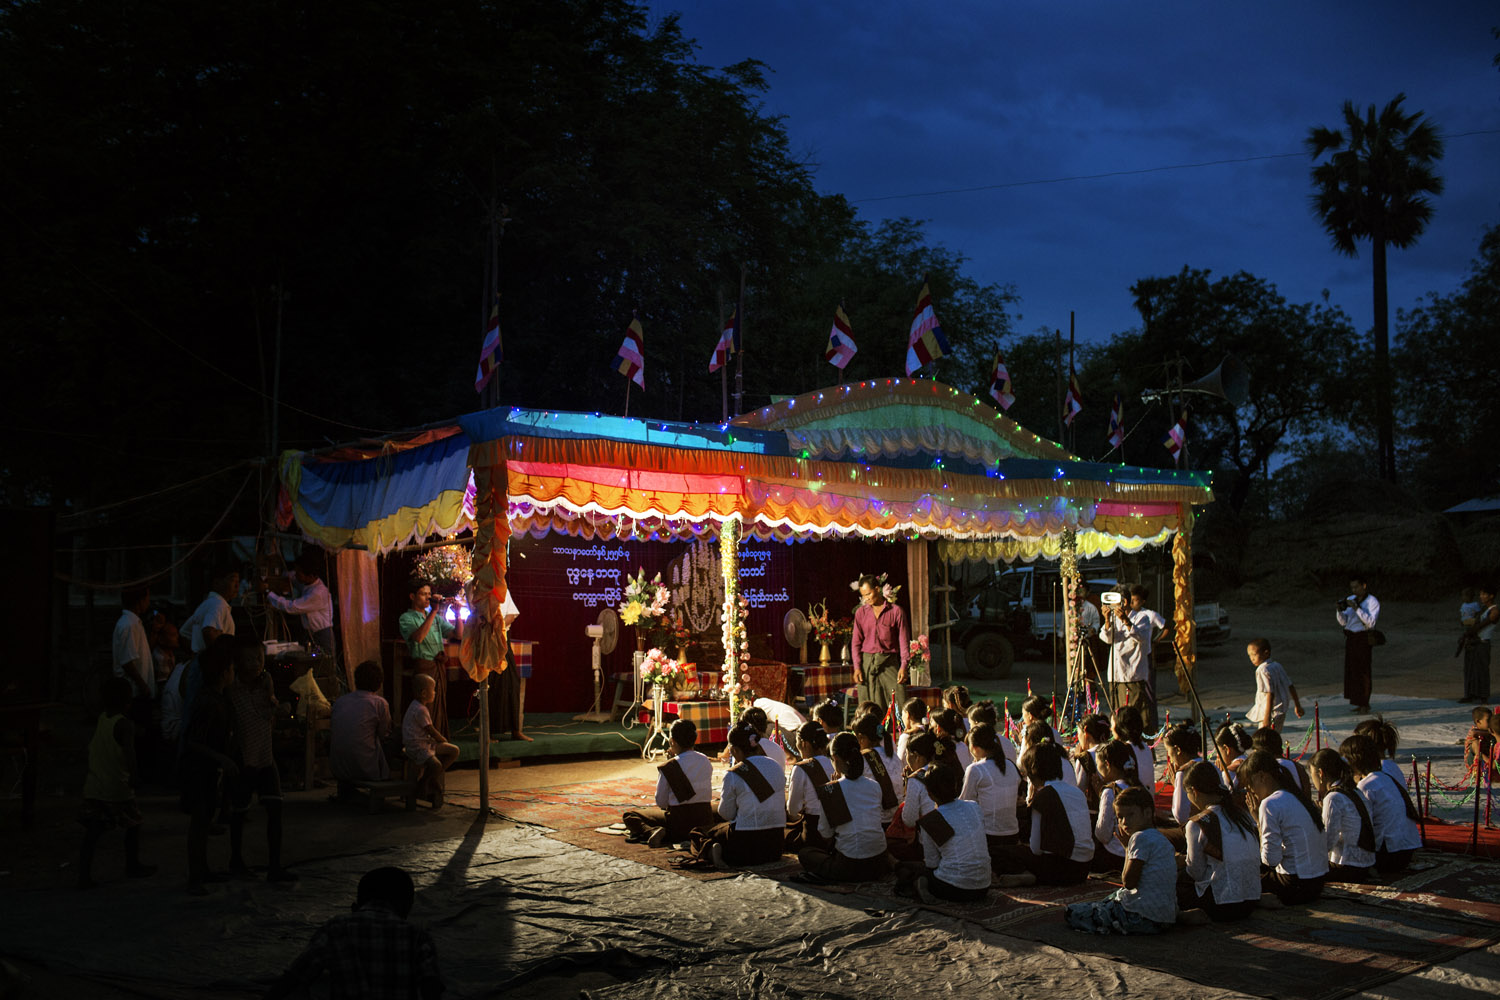 Villagers from Kyaw Min chant and pray as they wait for Wirathu's sermon at the Shwe Areleain Monastery.